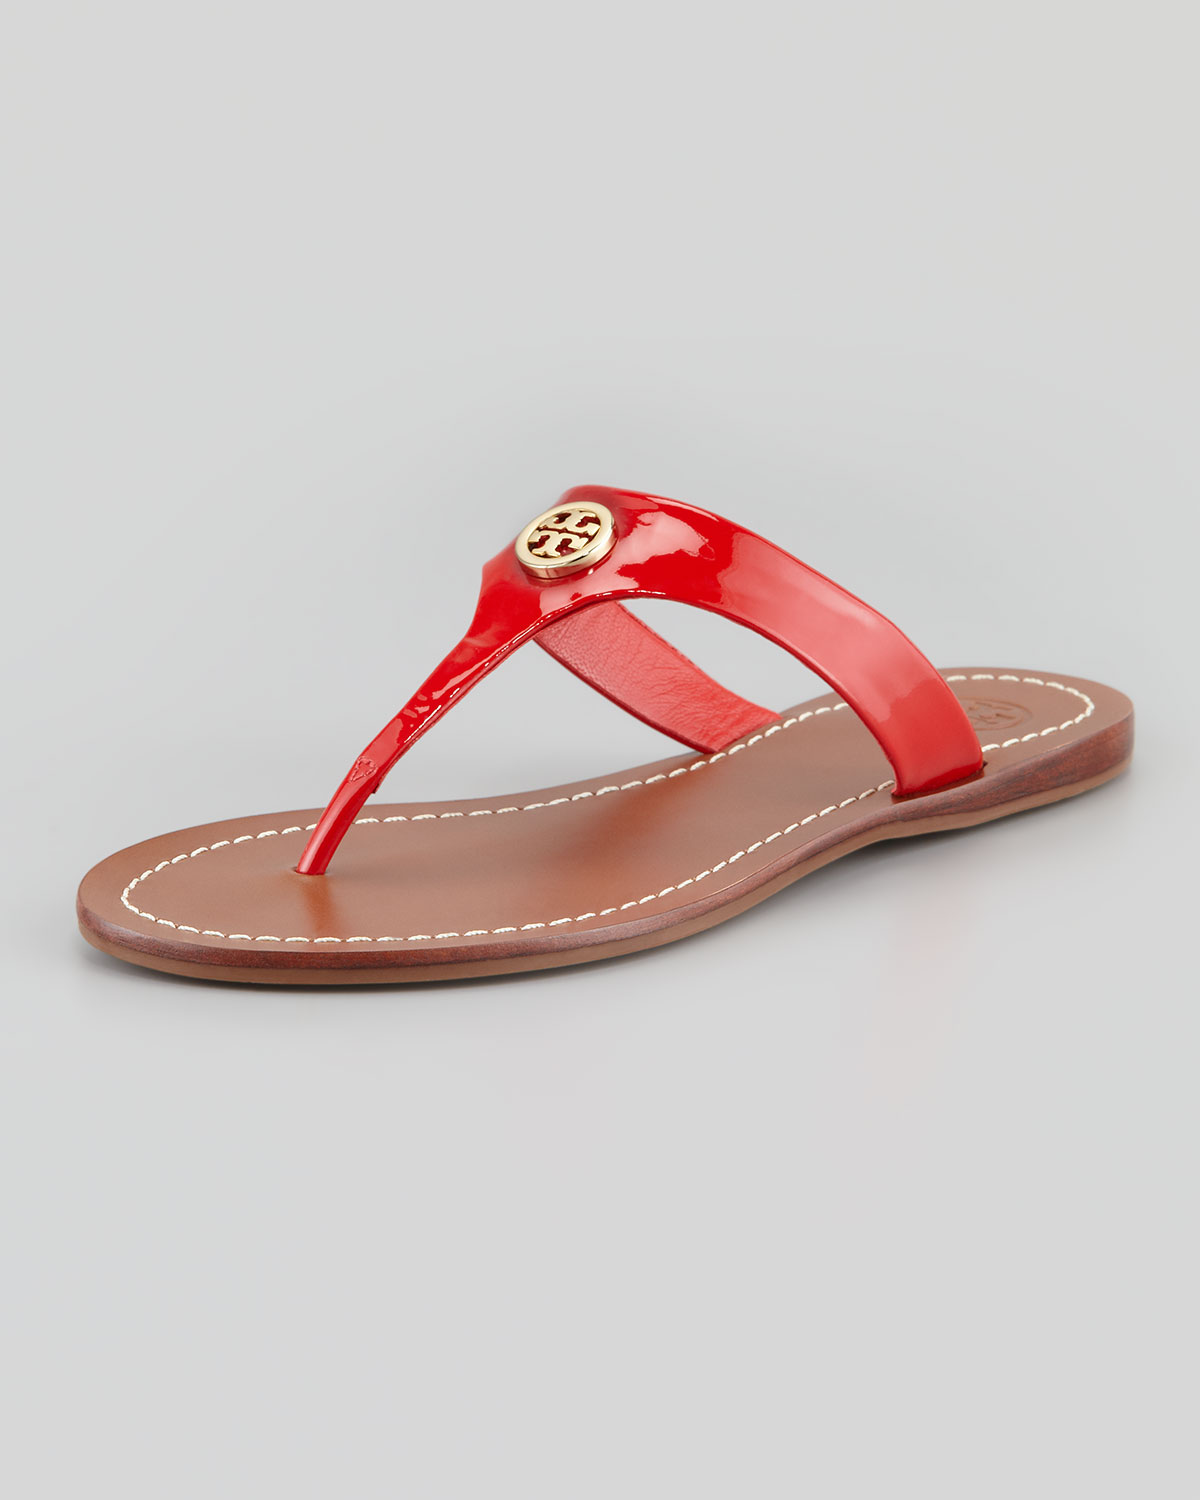 021e5cf6a70cb7 Lyst - Tory Burch Cameron Patent Logo Thong Sandal Red in Red